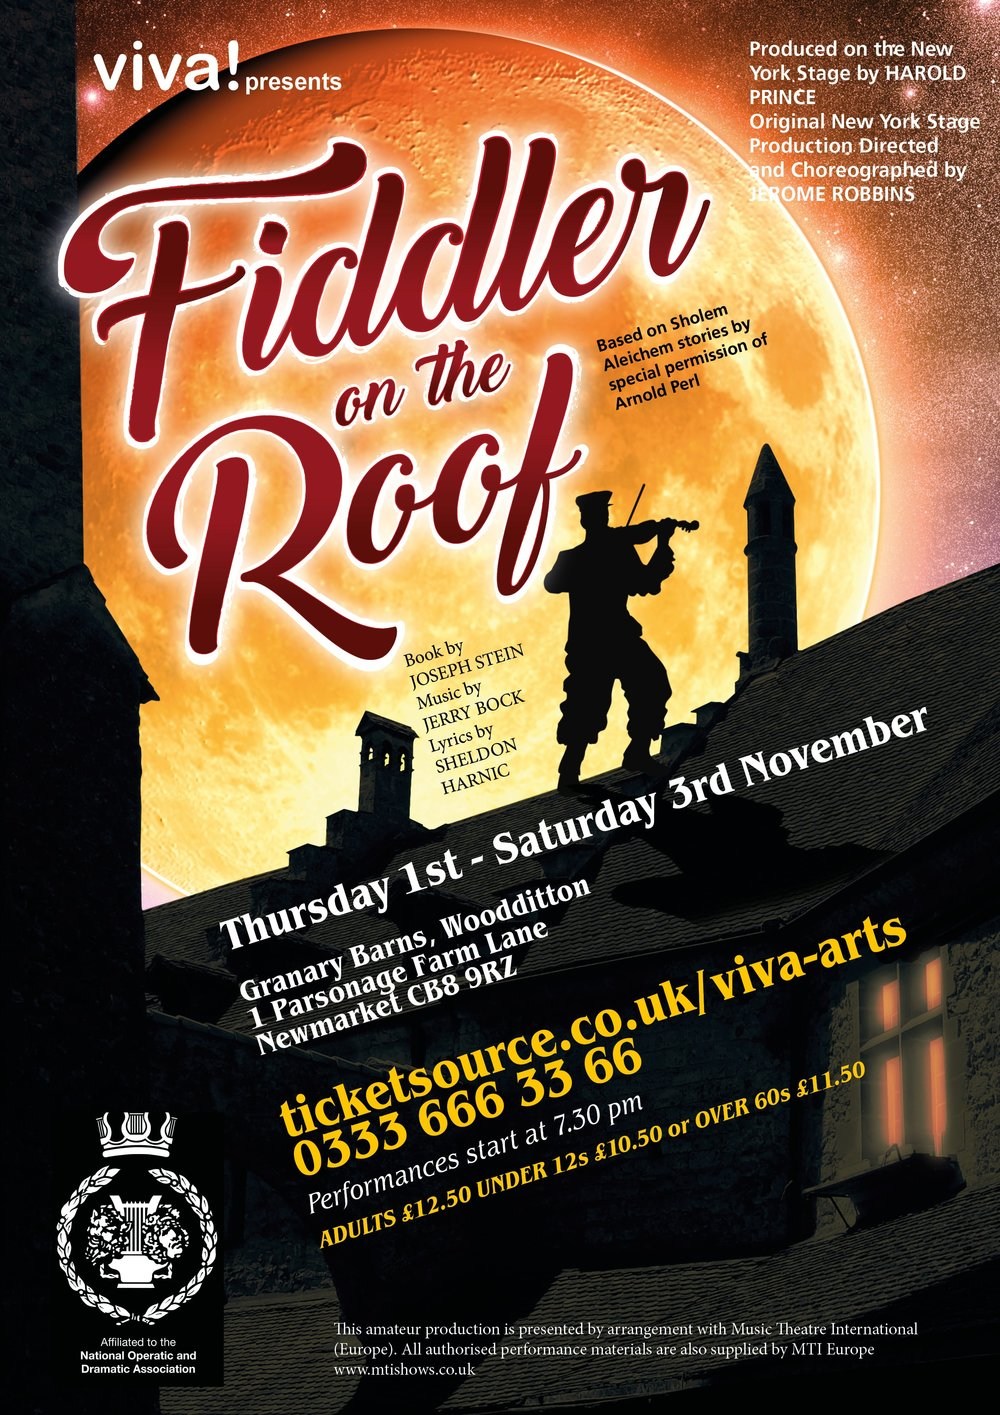 Viva_Fiddler Performance Poster FINAL-min.jpg